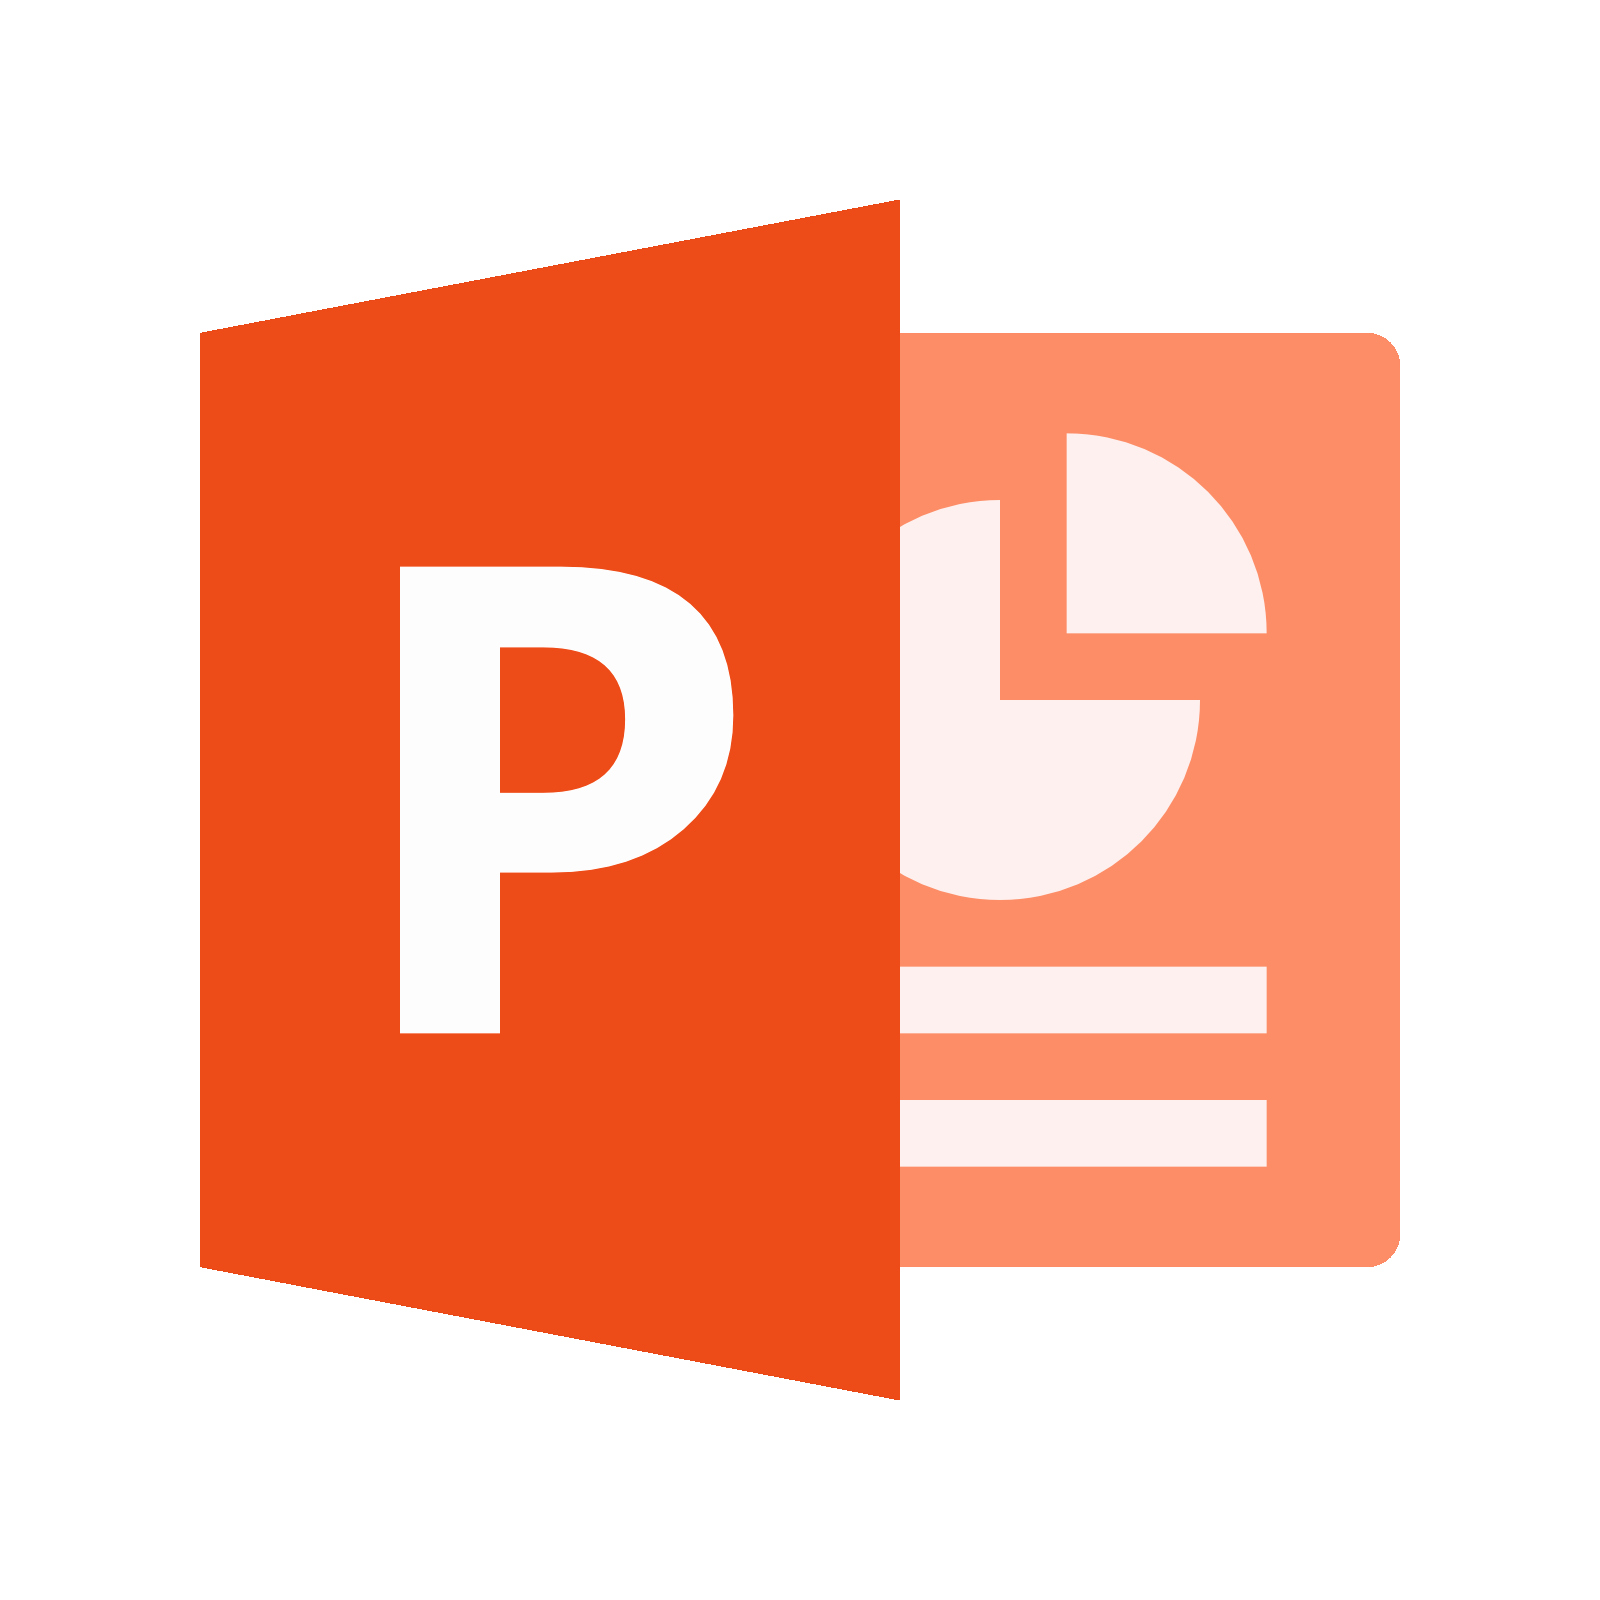 Office 2013 Background theme Download Elegant Microsoft Powerpoint Document Icon Free Icons and